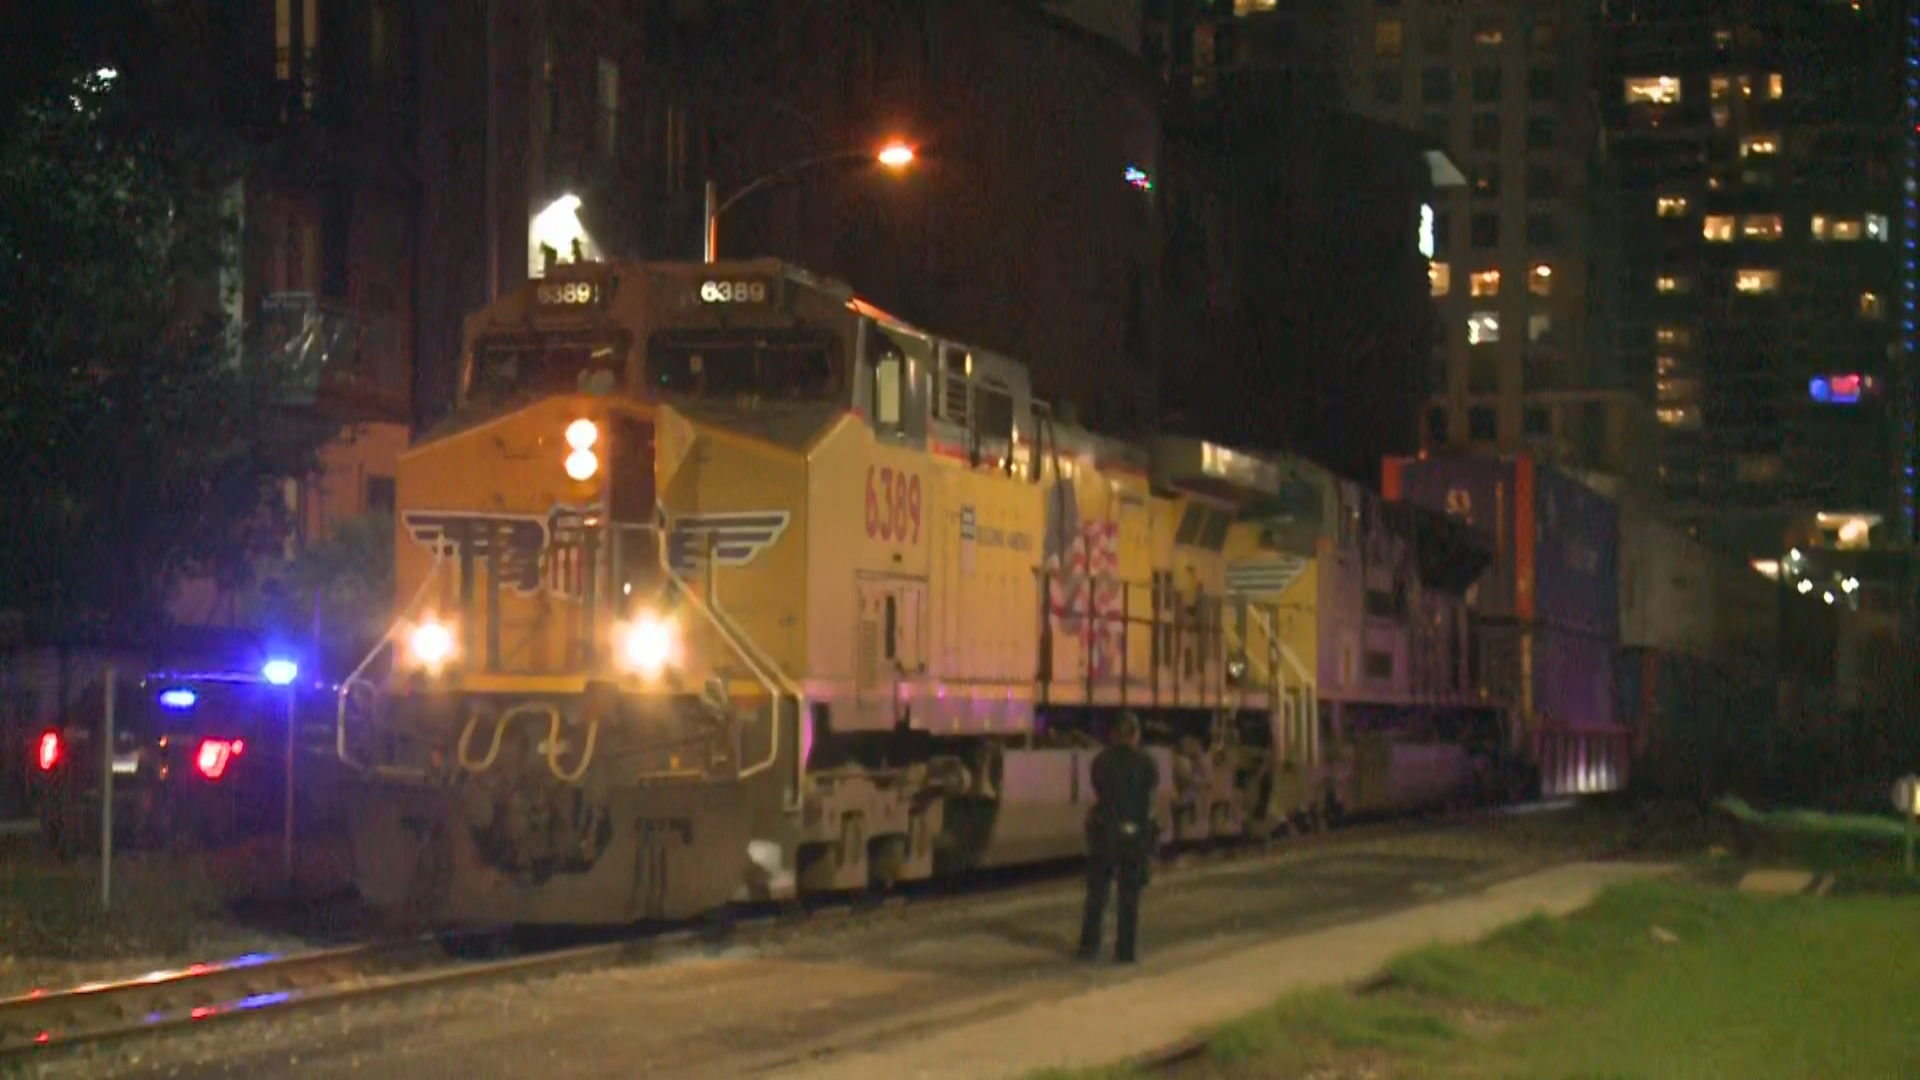 One person is dead after reports they were hit by a train near the Amtrak station in downtown Austin Friday night. (KXAN/Andy Way)